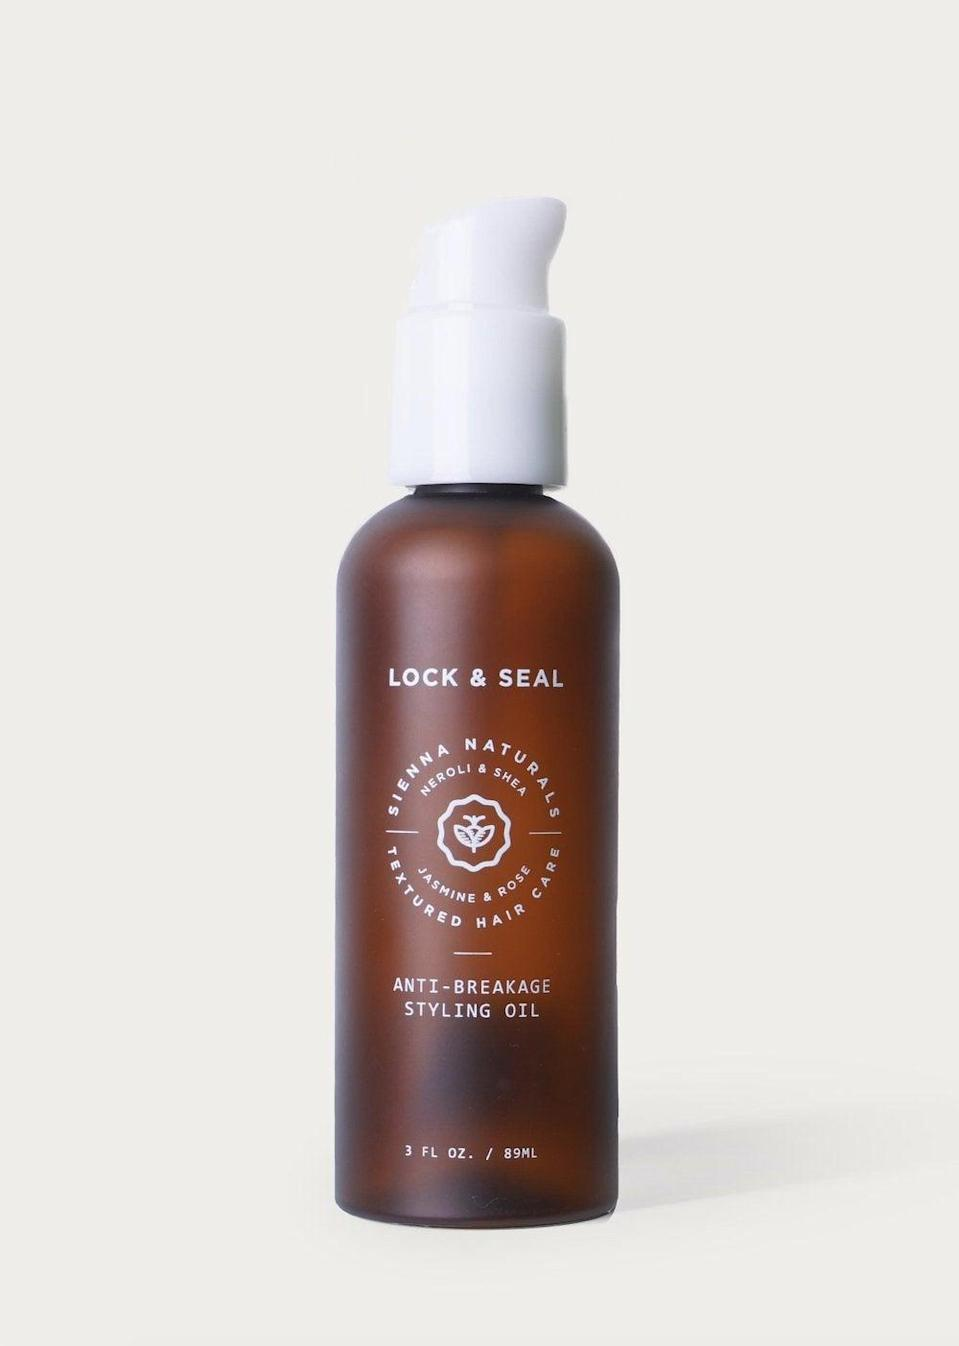 "<h2>Sienna Naturals Lock and Seal Anti-Breakage Oil</h2><br>Many hair oils are like band-aids for curly hair, designed to sit on top and add shine to mask split ends and other damage. This one does the opposite. It has a potent blend of ingredients like baobab, castor, rose oils, and shea butter to <em>treat </em>natural hair by replacing lost lipids and retaining moisture while adding shine and definition to all curl types.<br><br><strong>Sienna Naturals</strong> Sienna Naturals Lock and Seal Anti-Breakage Oil, $, available at <a href=""https://go.skimresources.com/?id=30283X879131&url=https%3A%2F%2Fwww.target.com%2Fp%2Fsienna-naturals-lock-and-seal-anti-breakage-oil-for-curls-3-fl-oz%2F-%2FA-80332895%23lnk%3Dsametab"" rel=""nofollow noopener"" target=""_blank"" data-ylk=""slk:Target"" class=""link rapid-noclick-resp"">Target</a>"